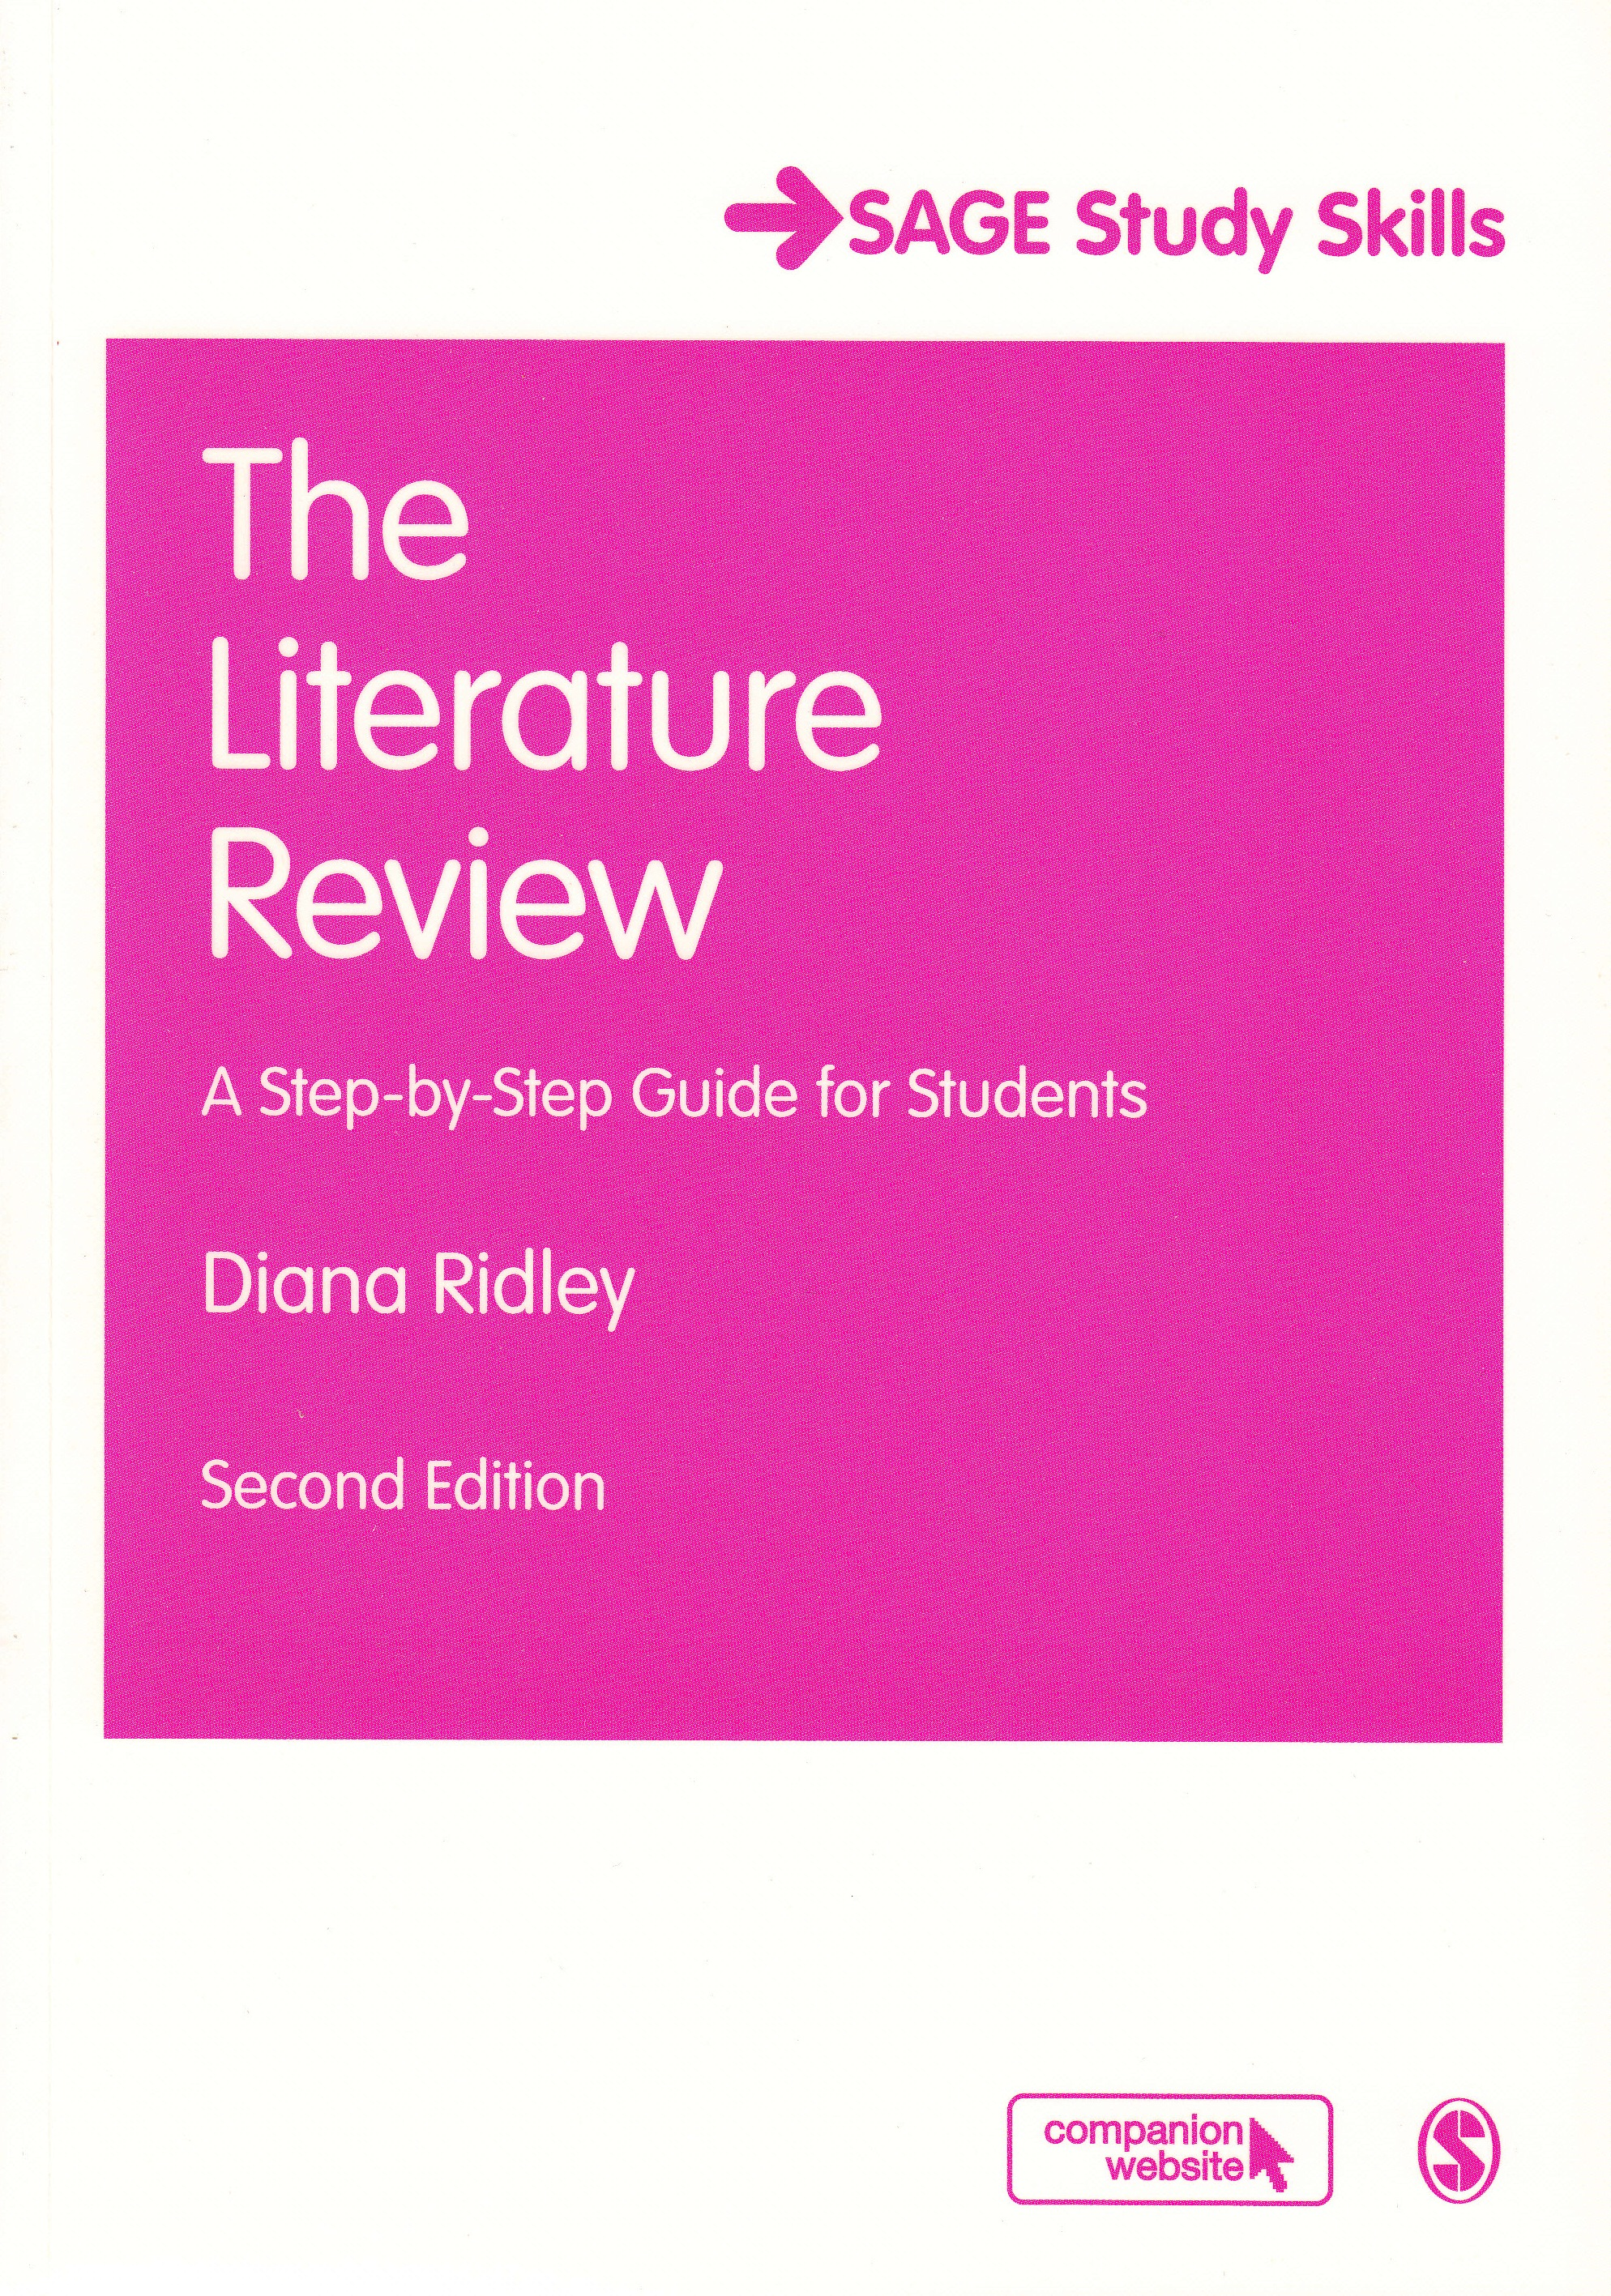 the literature review a step-by-step guide for students by diana ridley